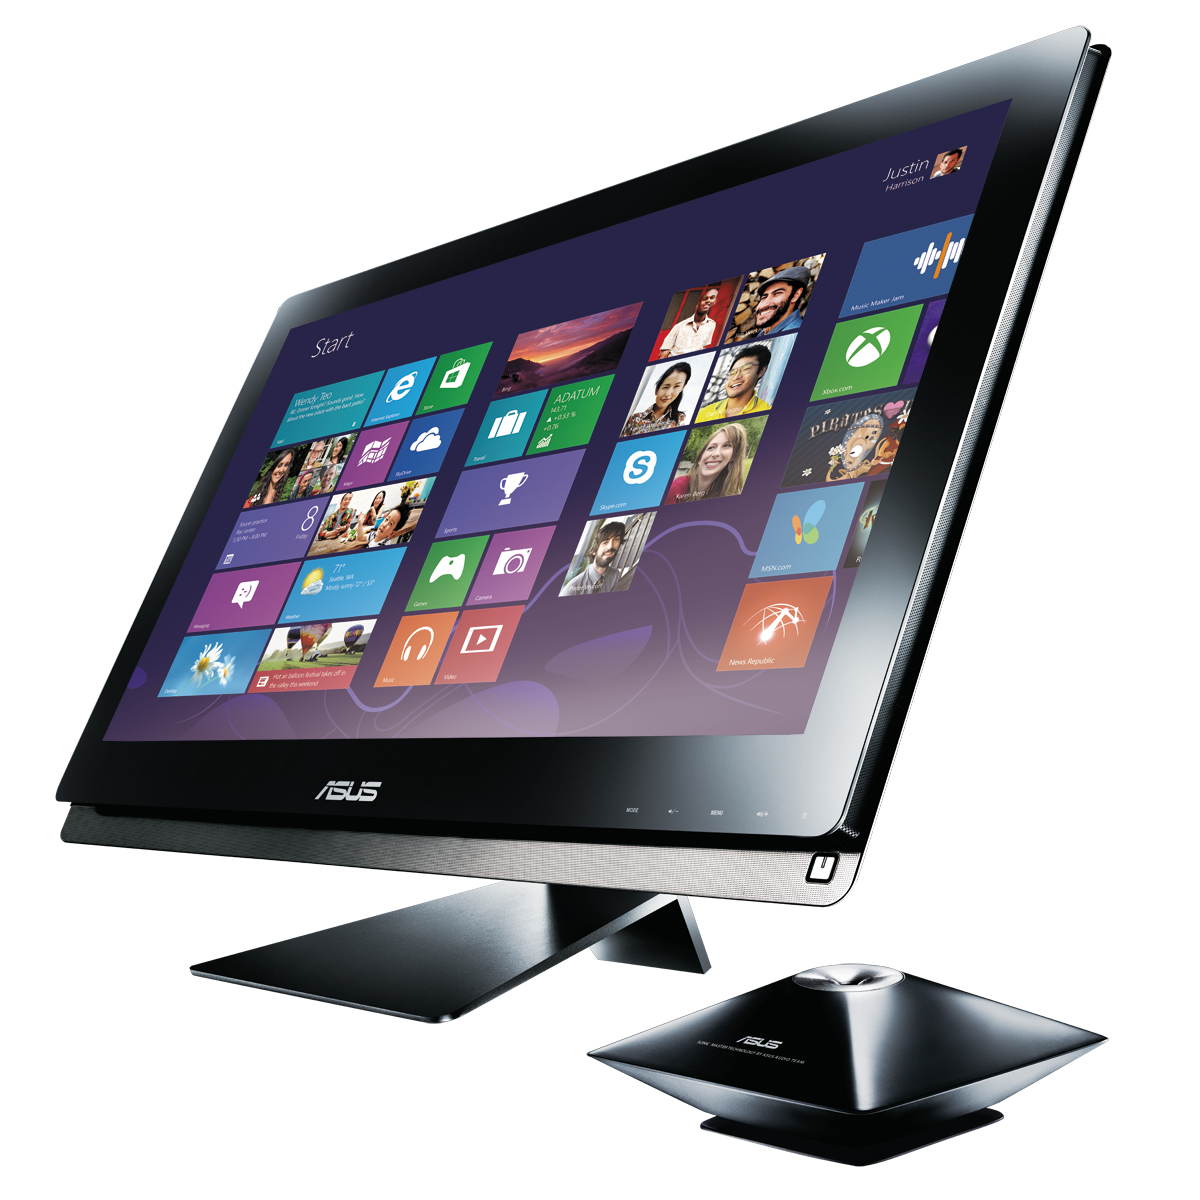 "PC de bureau ASUS EeeTop PC ET2701INTI-B023K Intel Core i7-3770S 8 Go 2 To NVIDIA GeForce 640M LED 27"" Tactile Lecteur Blu-ray/Graveur DVD Wi-Fi N/Bluetooth Tuner TNT Webcam Windows 8 64 bits"